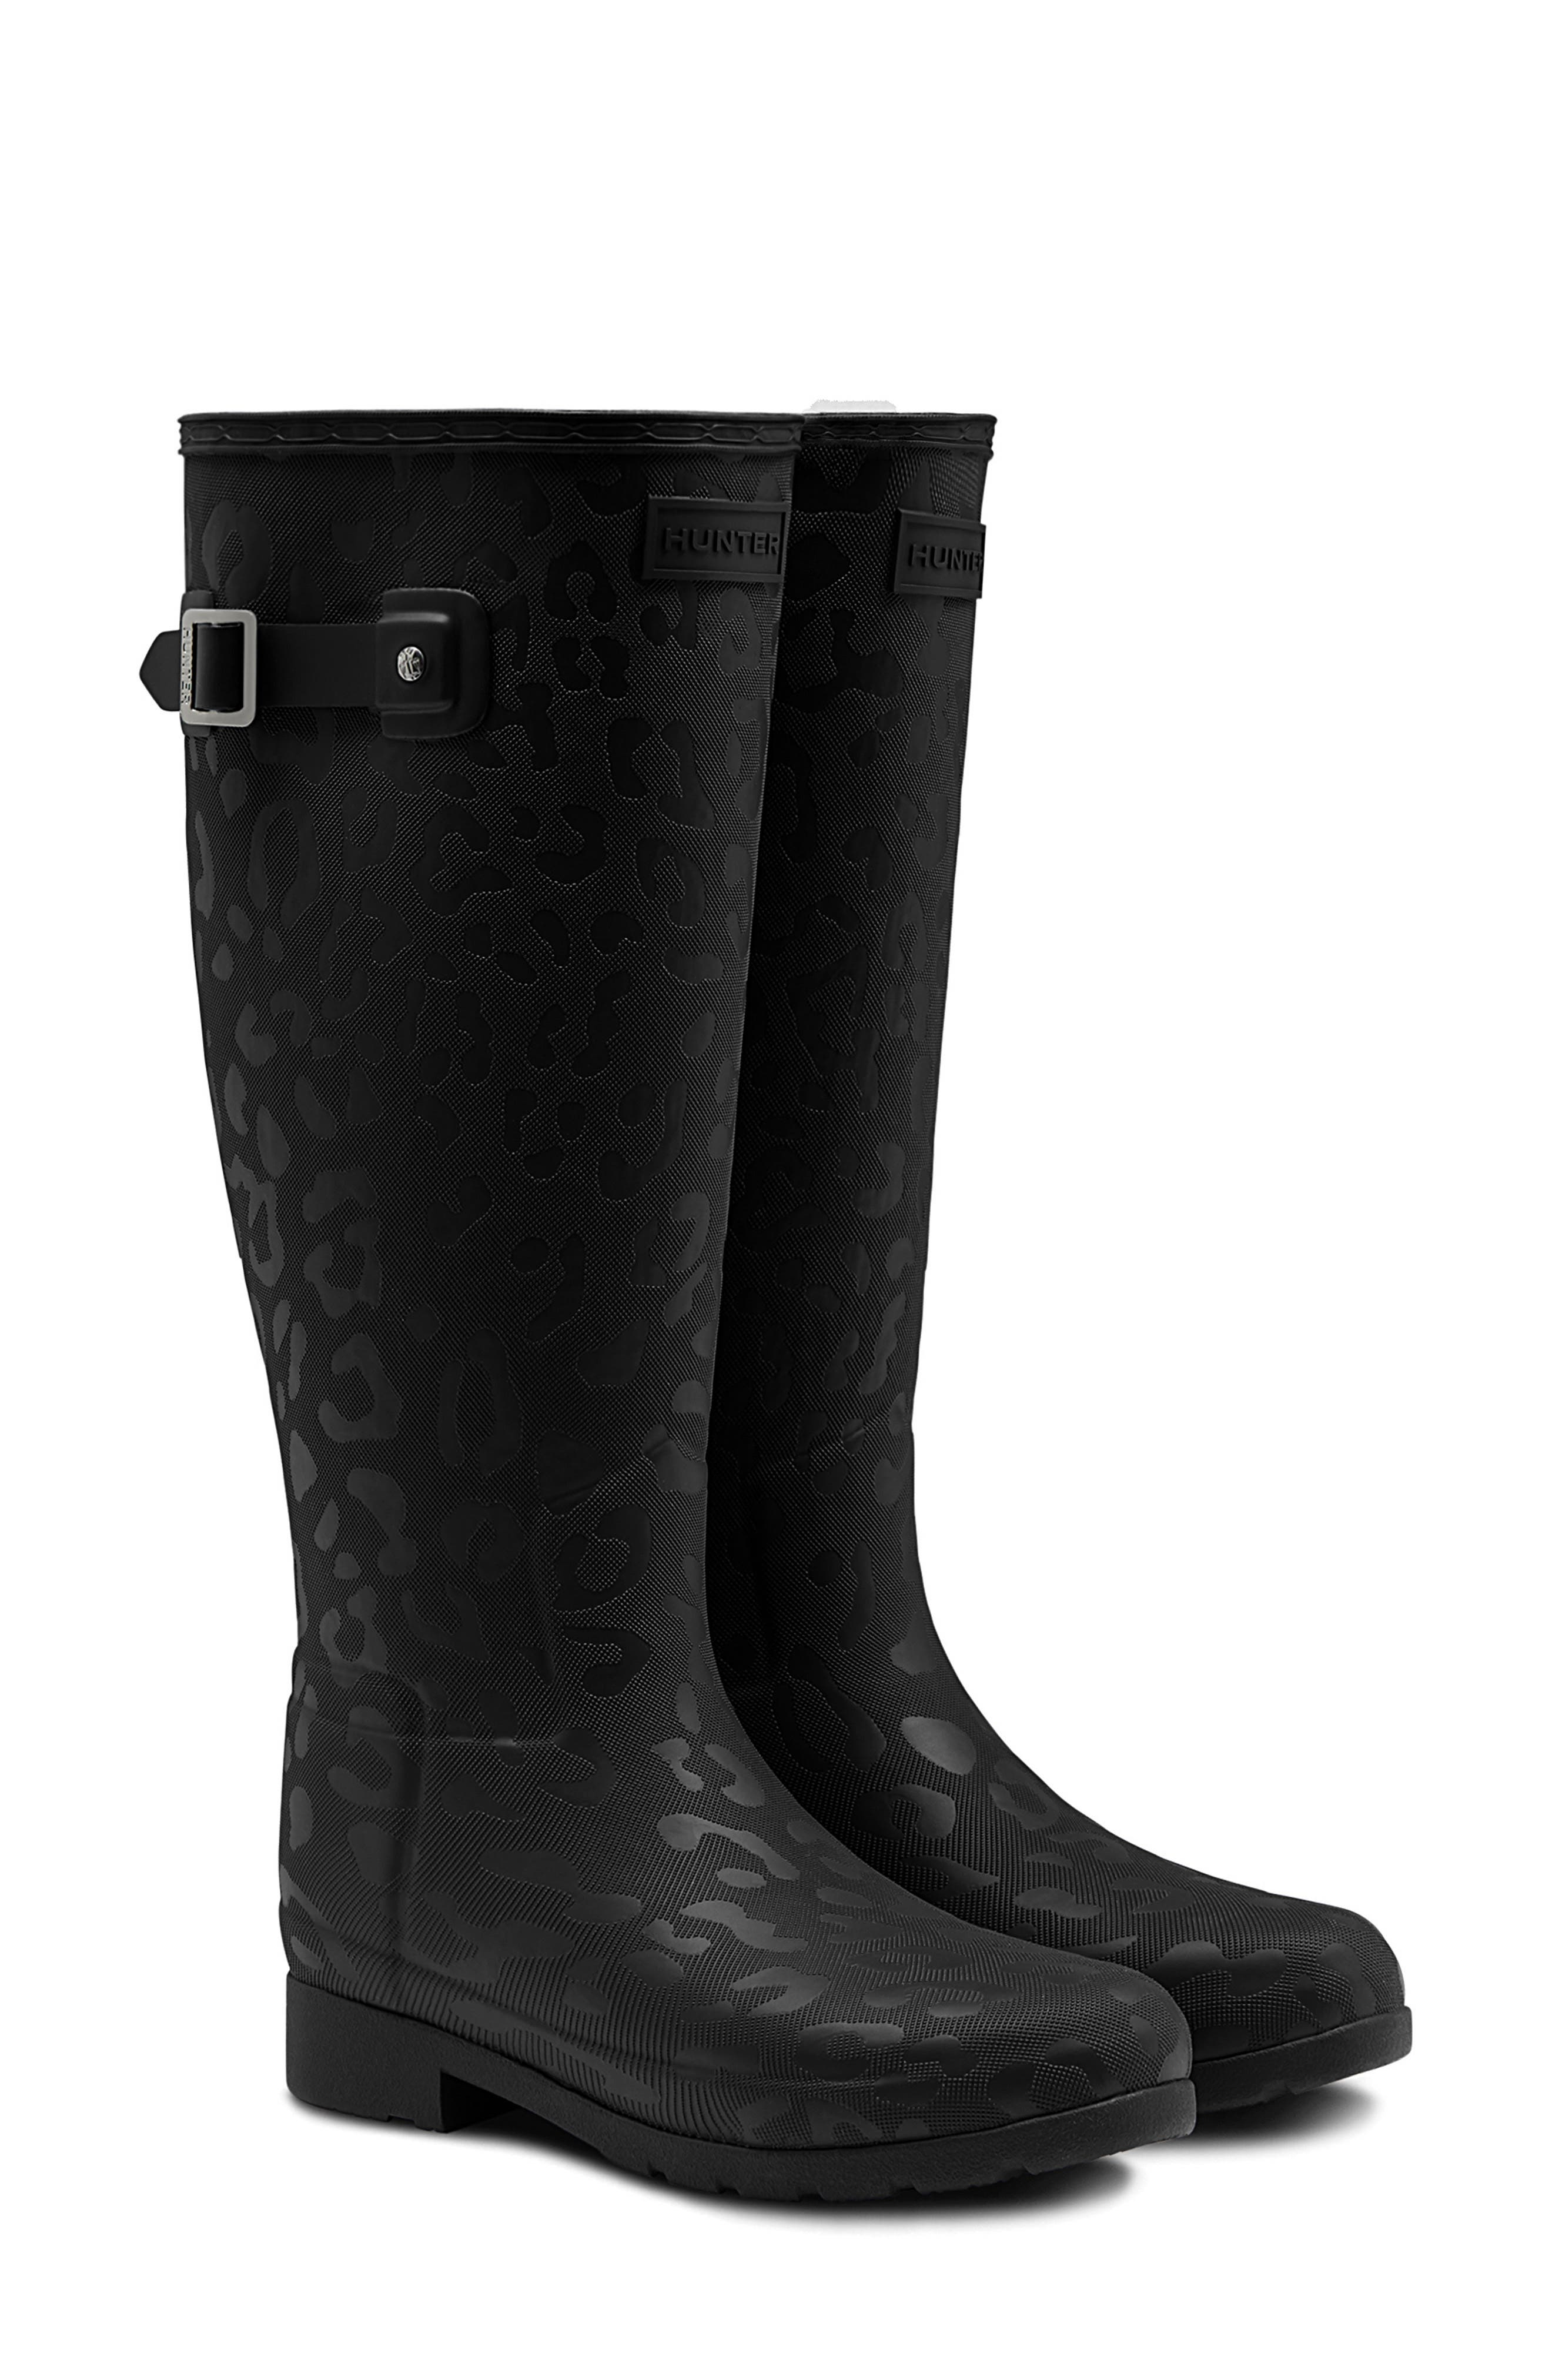 Original Insulated Refined Tall Rain Boot,                             Main thumbnail 1, color,                             BLACK